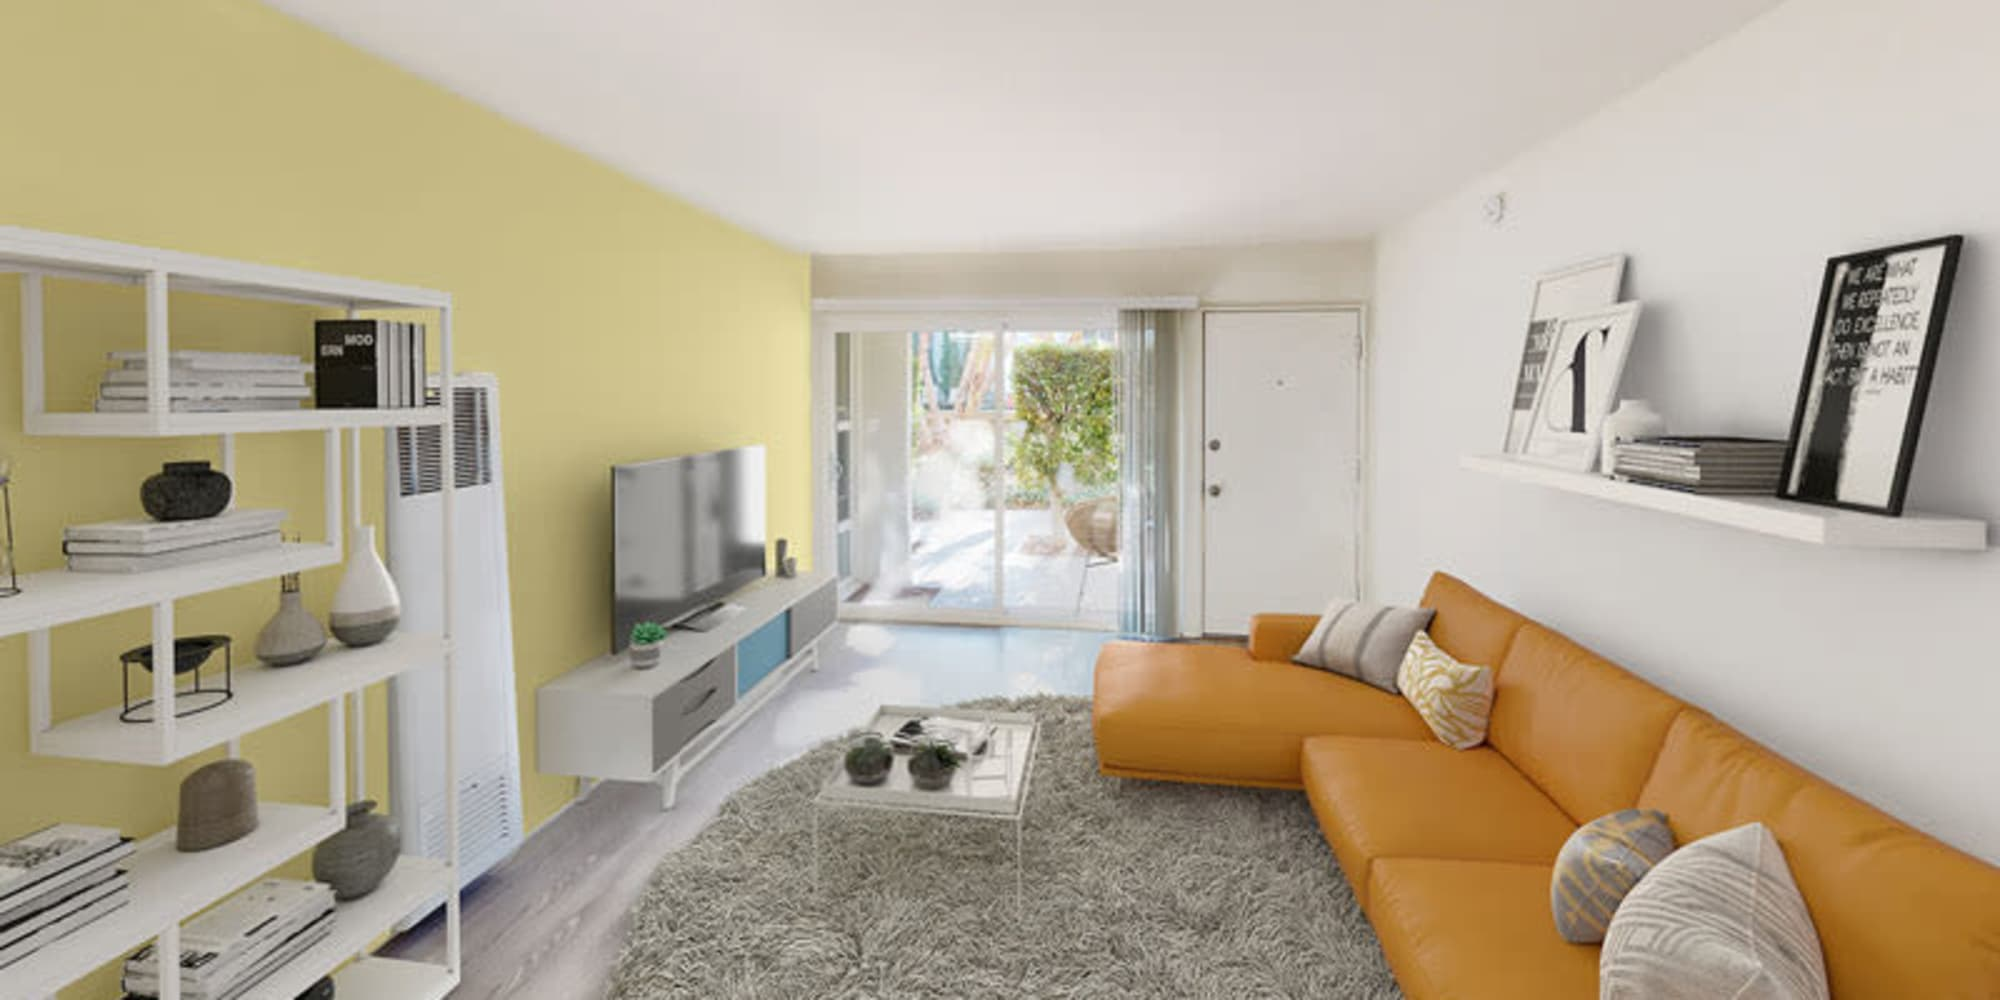 Colorful living room of a one bedroom apartment at West Park Village in Los Angeles, California